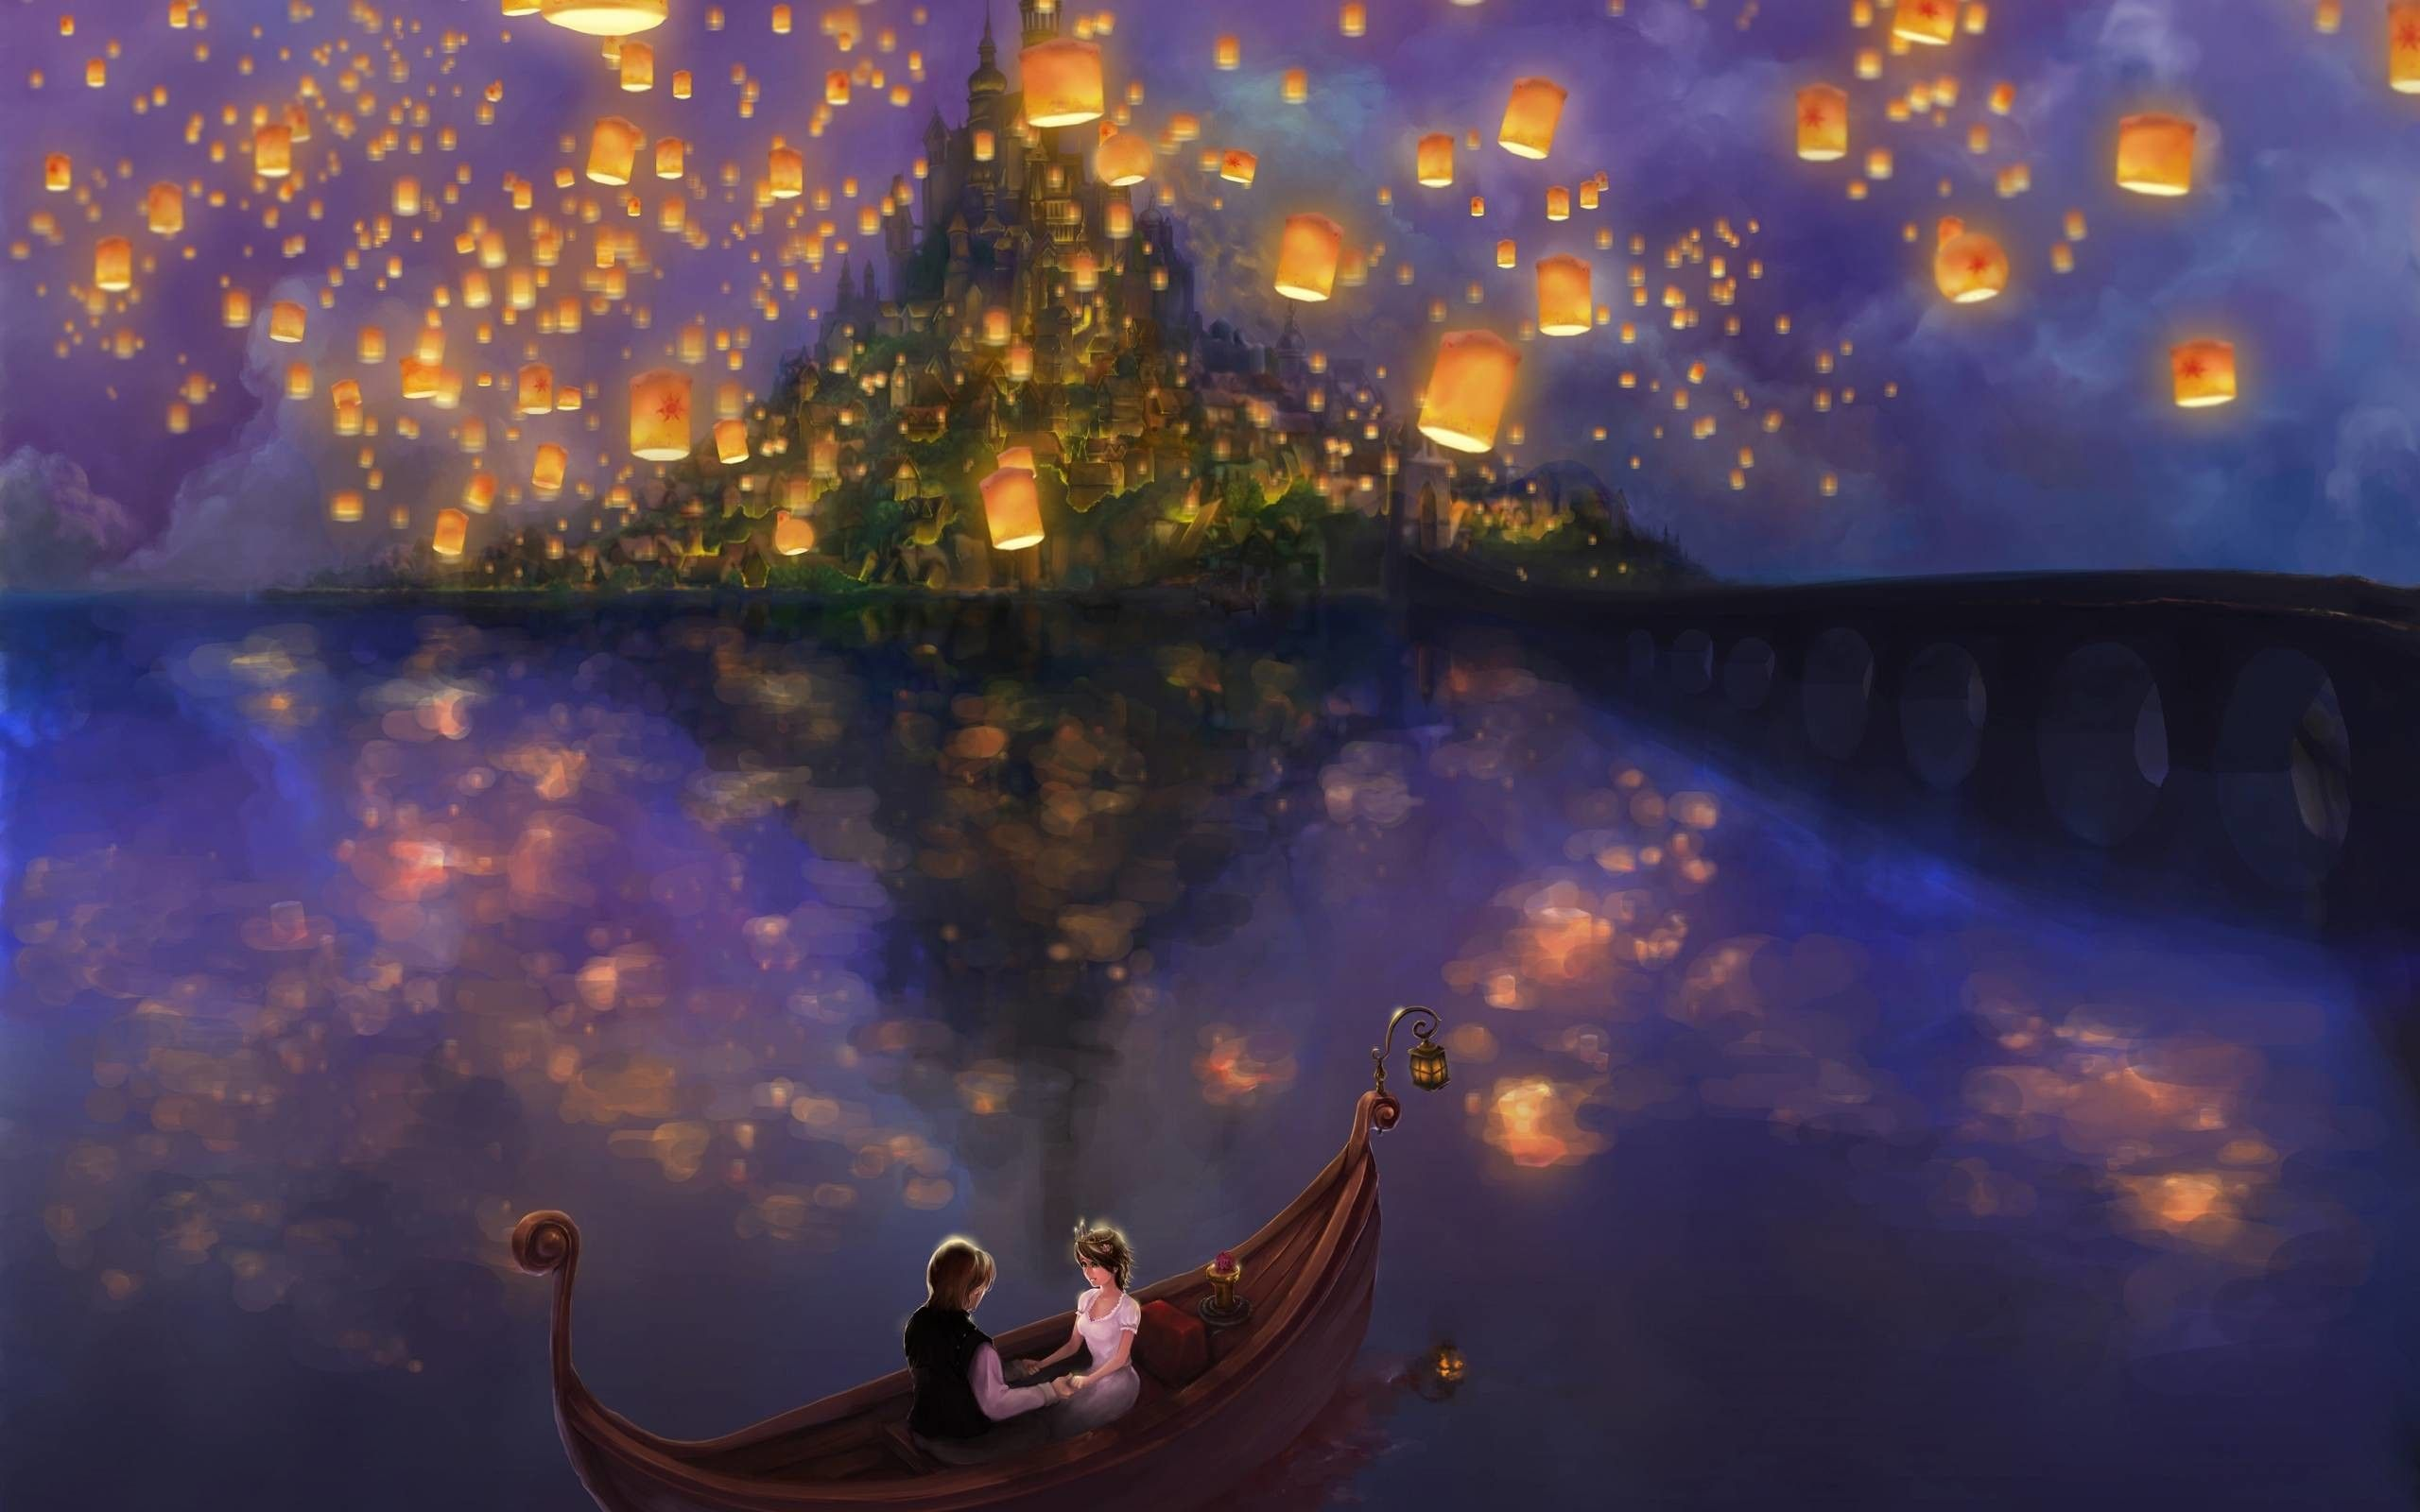 Tangled Wallpapers   Top Tangled Backgrounds   WallpaperAccess 2560x1600